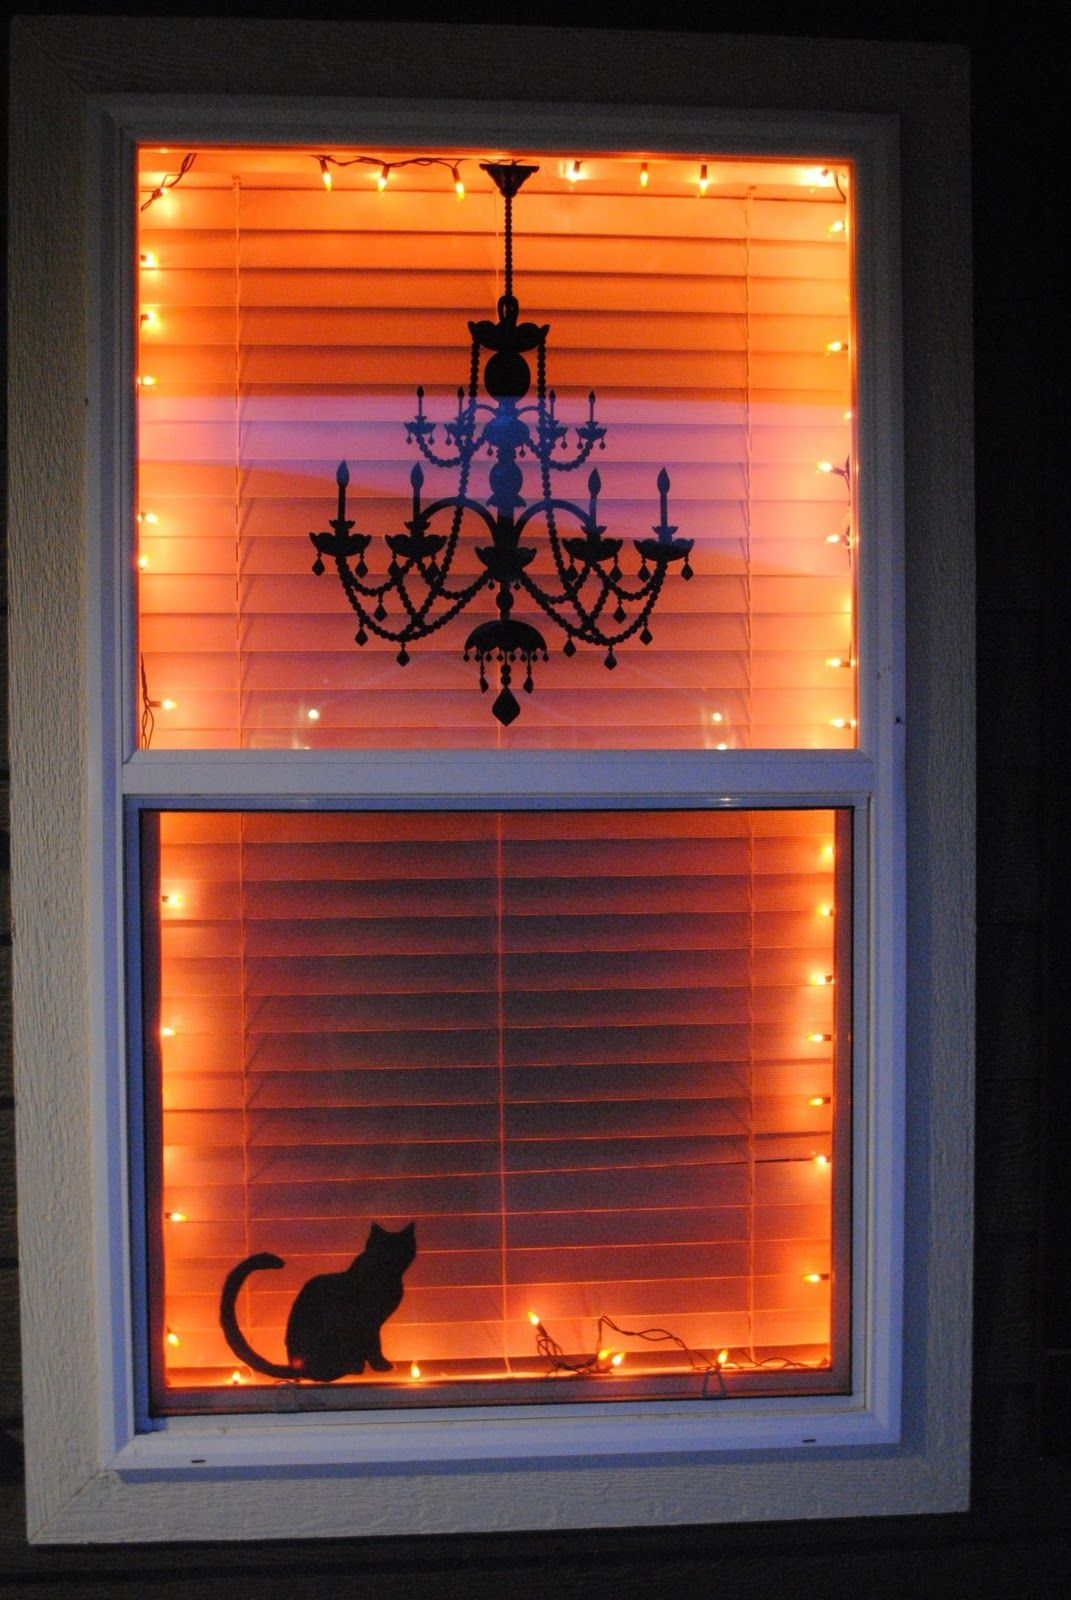 Orange Lights, A Chandelier Decal From Target And A Black Cat Silhouette,  Create This